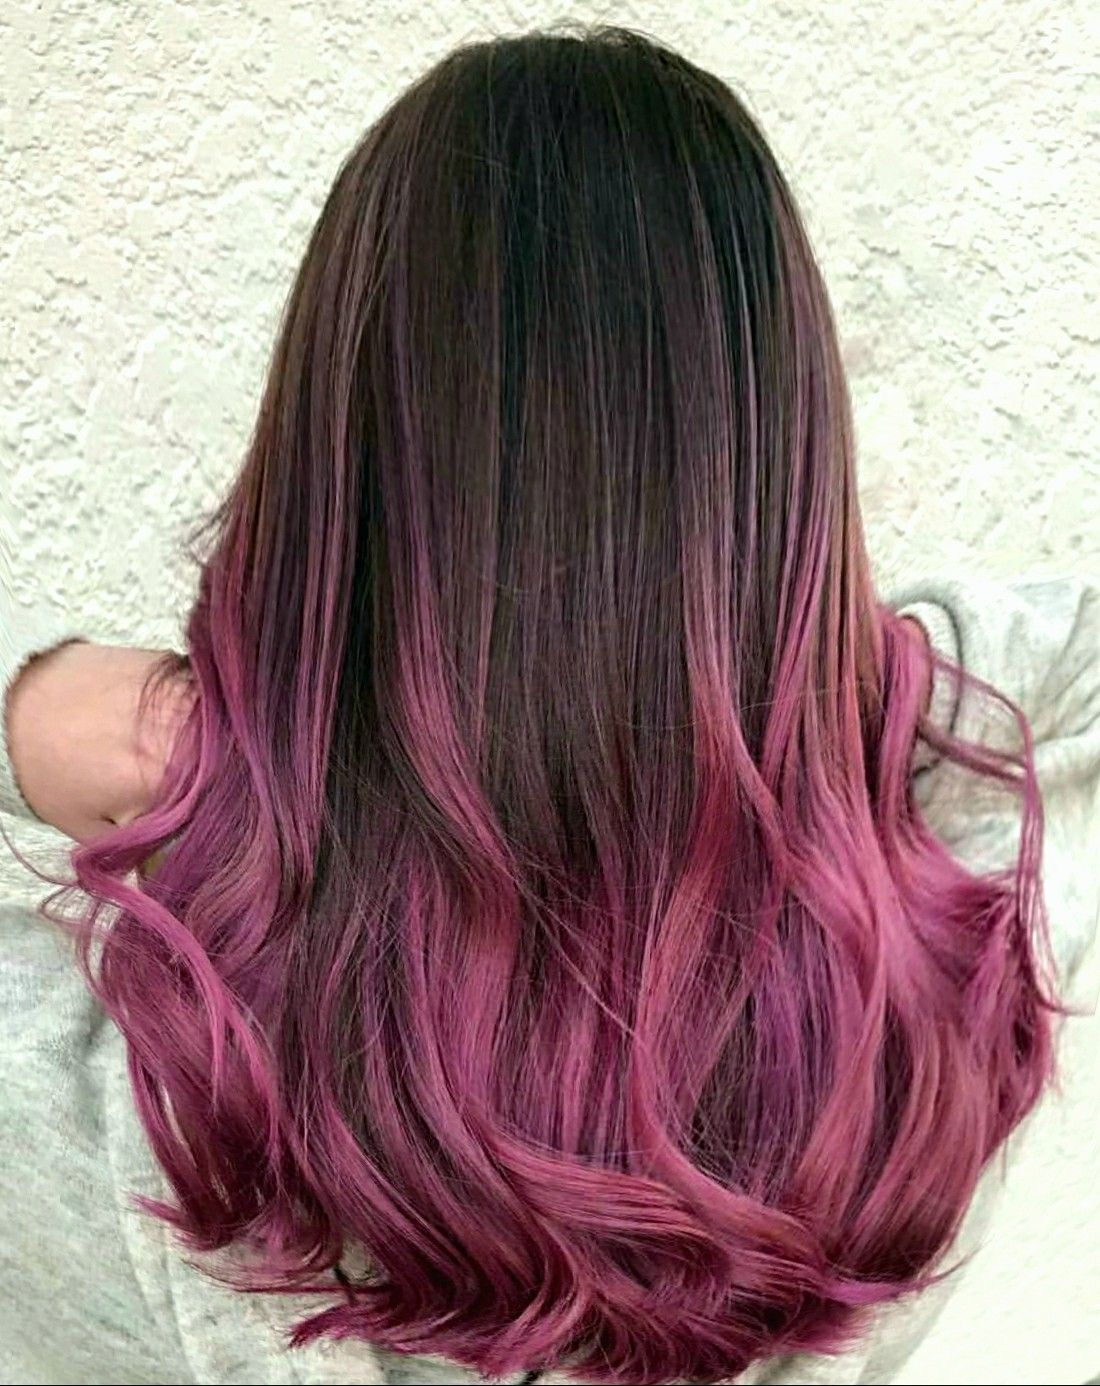 Ombre Brunette Into Vivid Roses And Pinks Purple Ombre Hair Pink Ombre Hair Pink Hair Tips